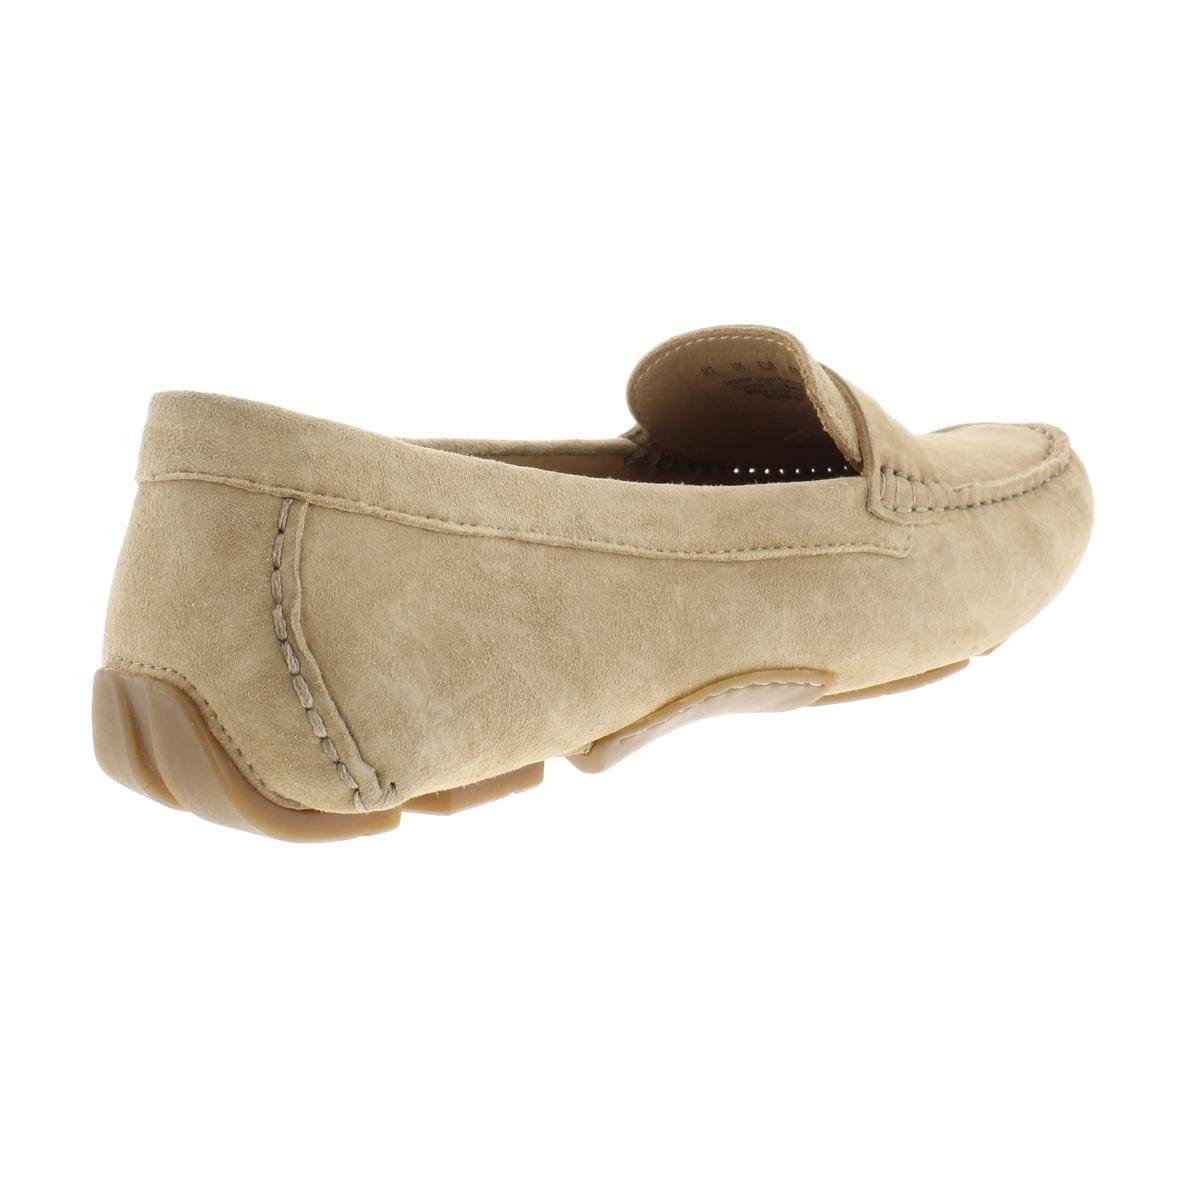 53994a0d707 Shop Naturalizer Womens Natasha Penny Loafers Leather Slip On - Free  Shipping Today - Overstock - 27593575